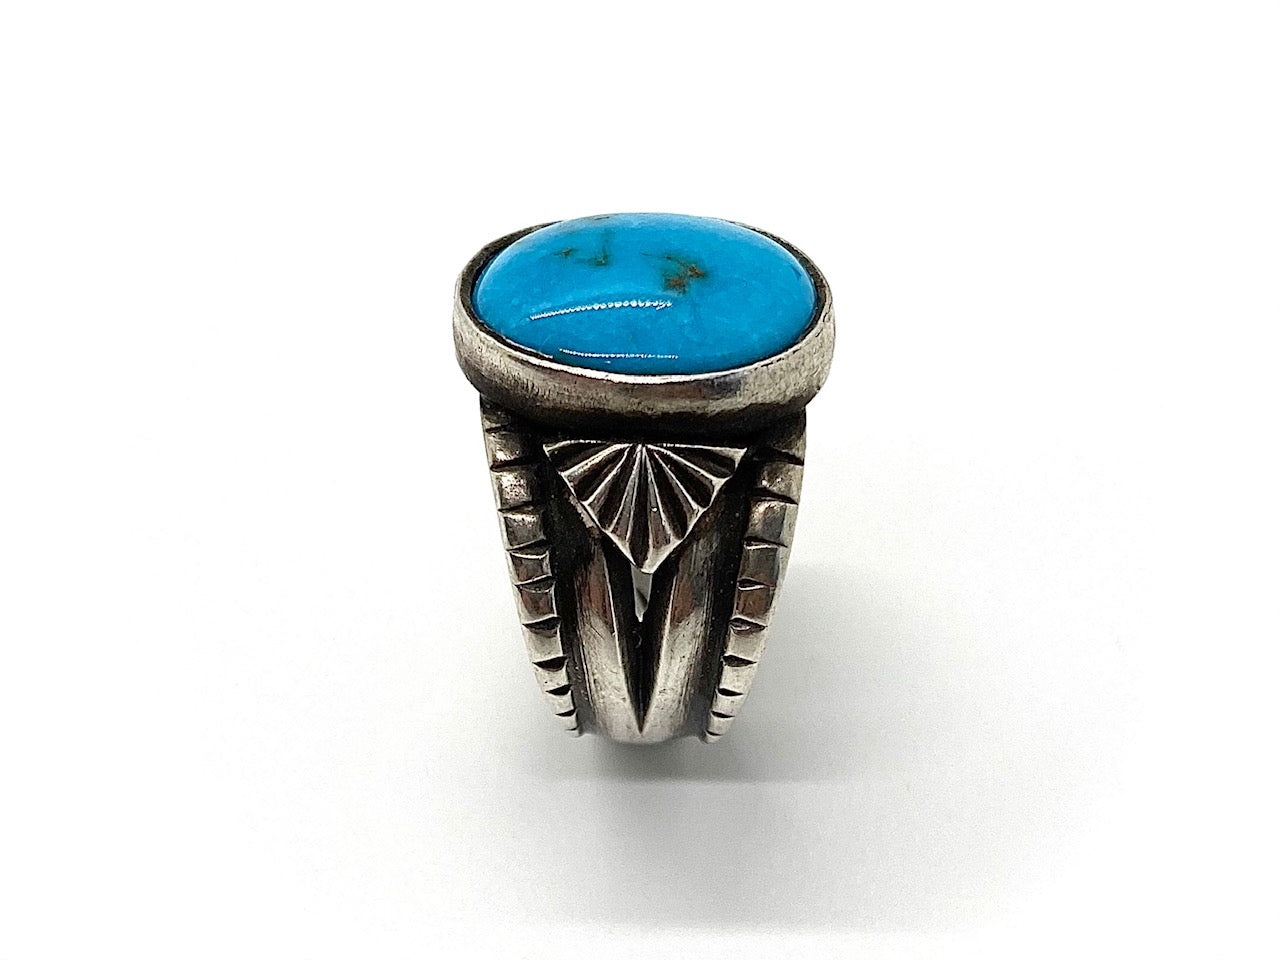 Tufa Cast Sterling Silver Candelaria Turquoise Ring